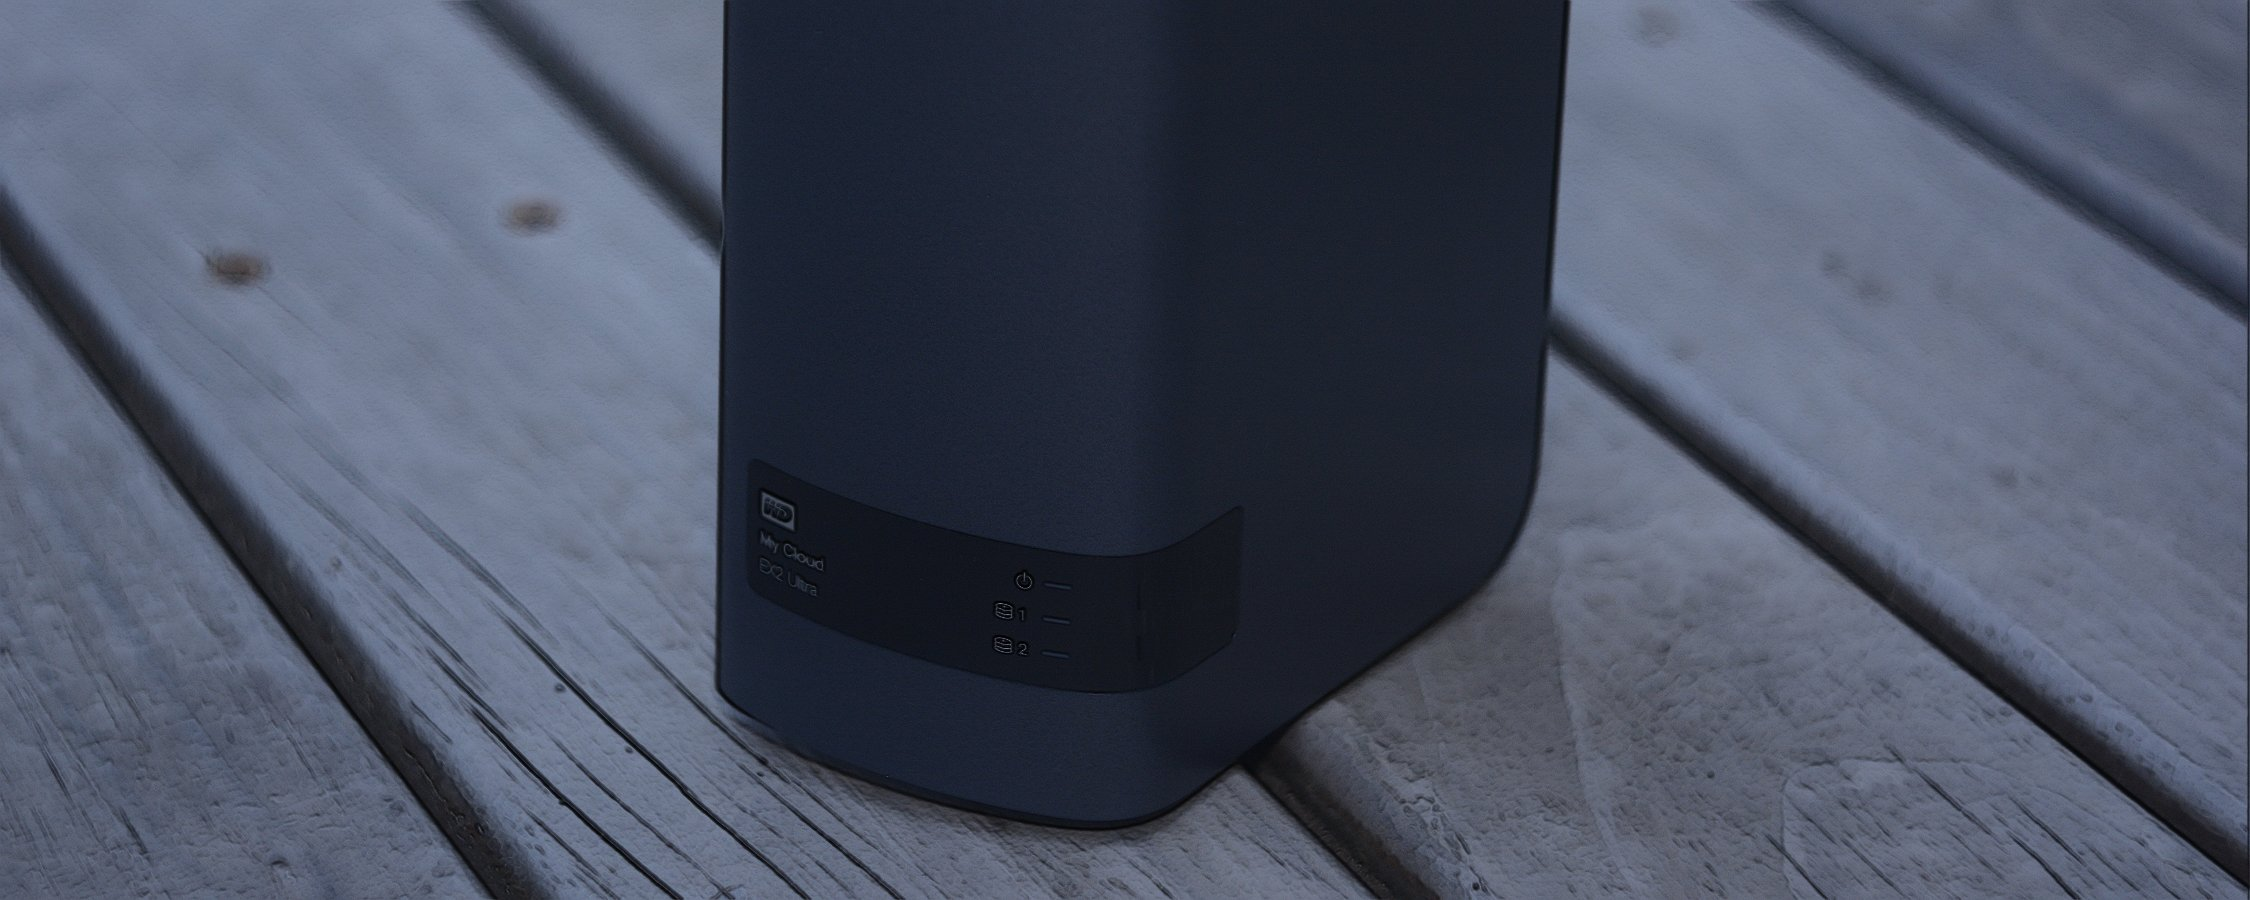 WD MyCloud EX2 Ultra 8TB NAS Review - TechSpot